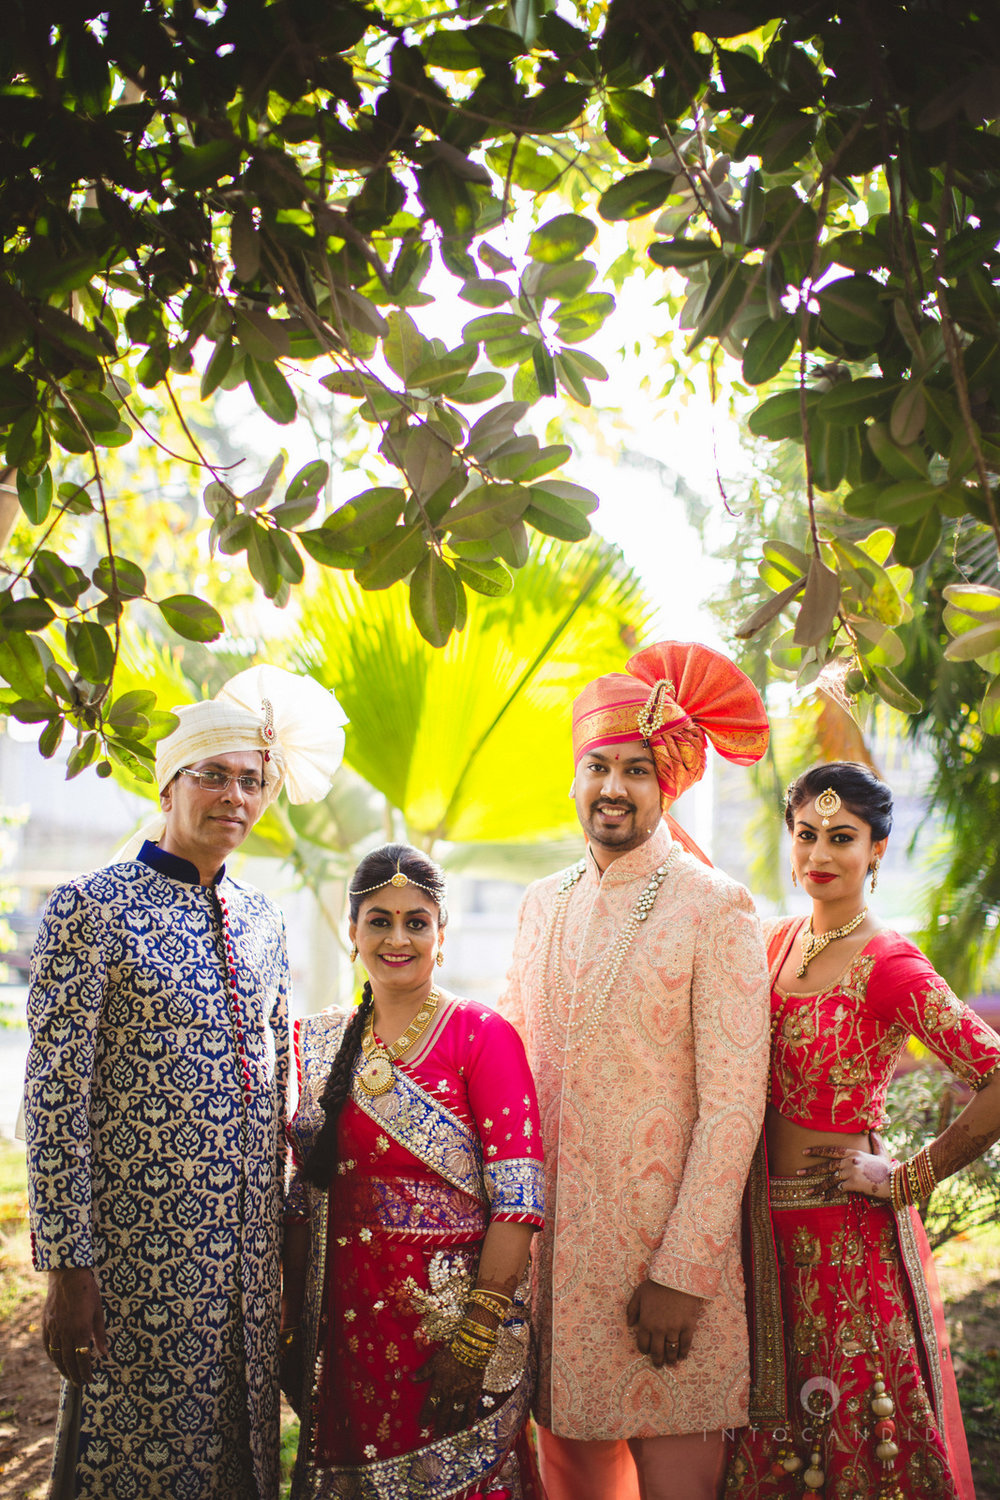 mumbai-gujarati-wedding-photographer-intocandid-photography-tg-029.jpg